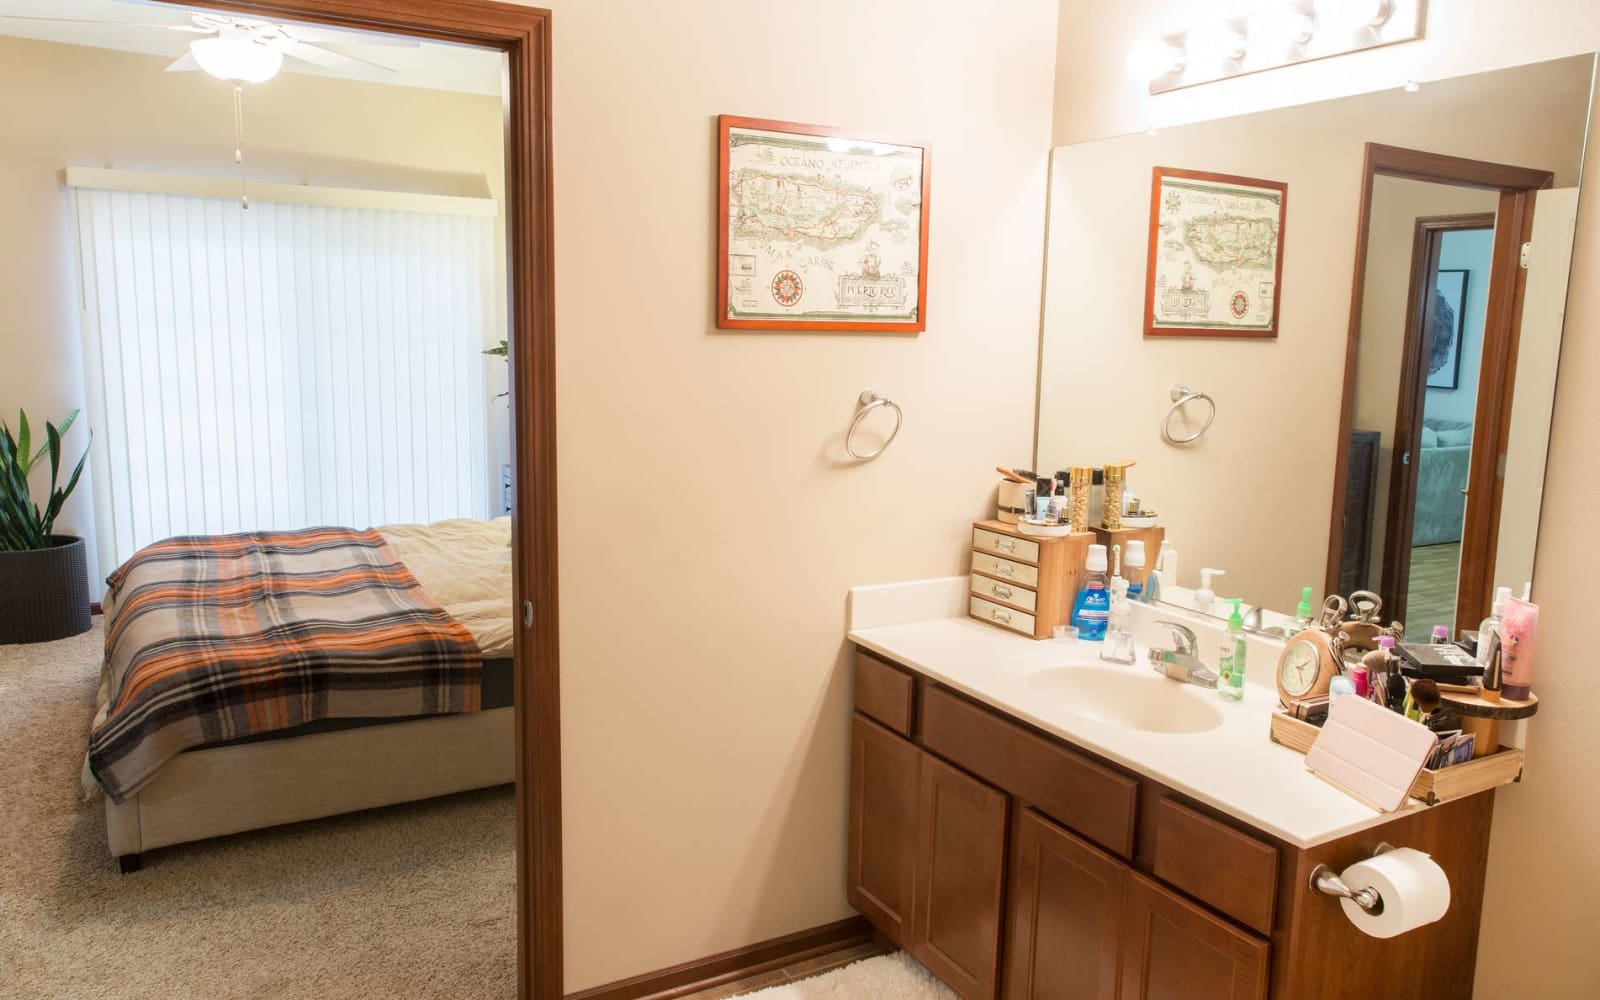 Bathroom attached to the bedroom at Woodland Reserve in Ankeny, Iowa